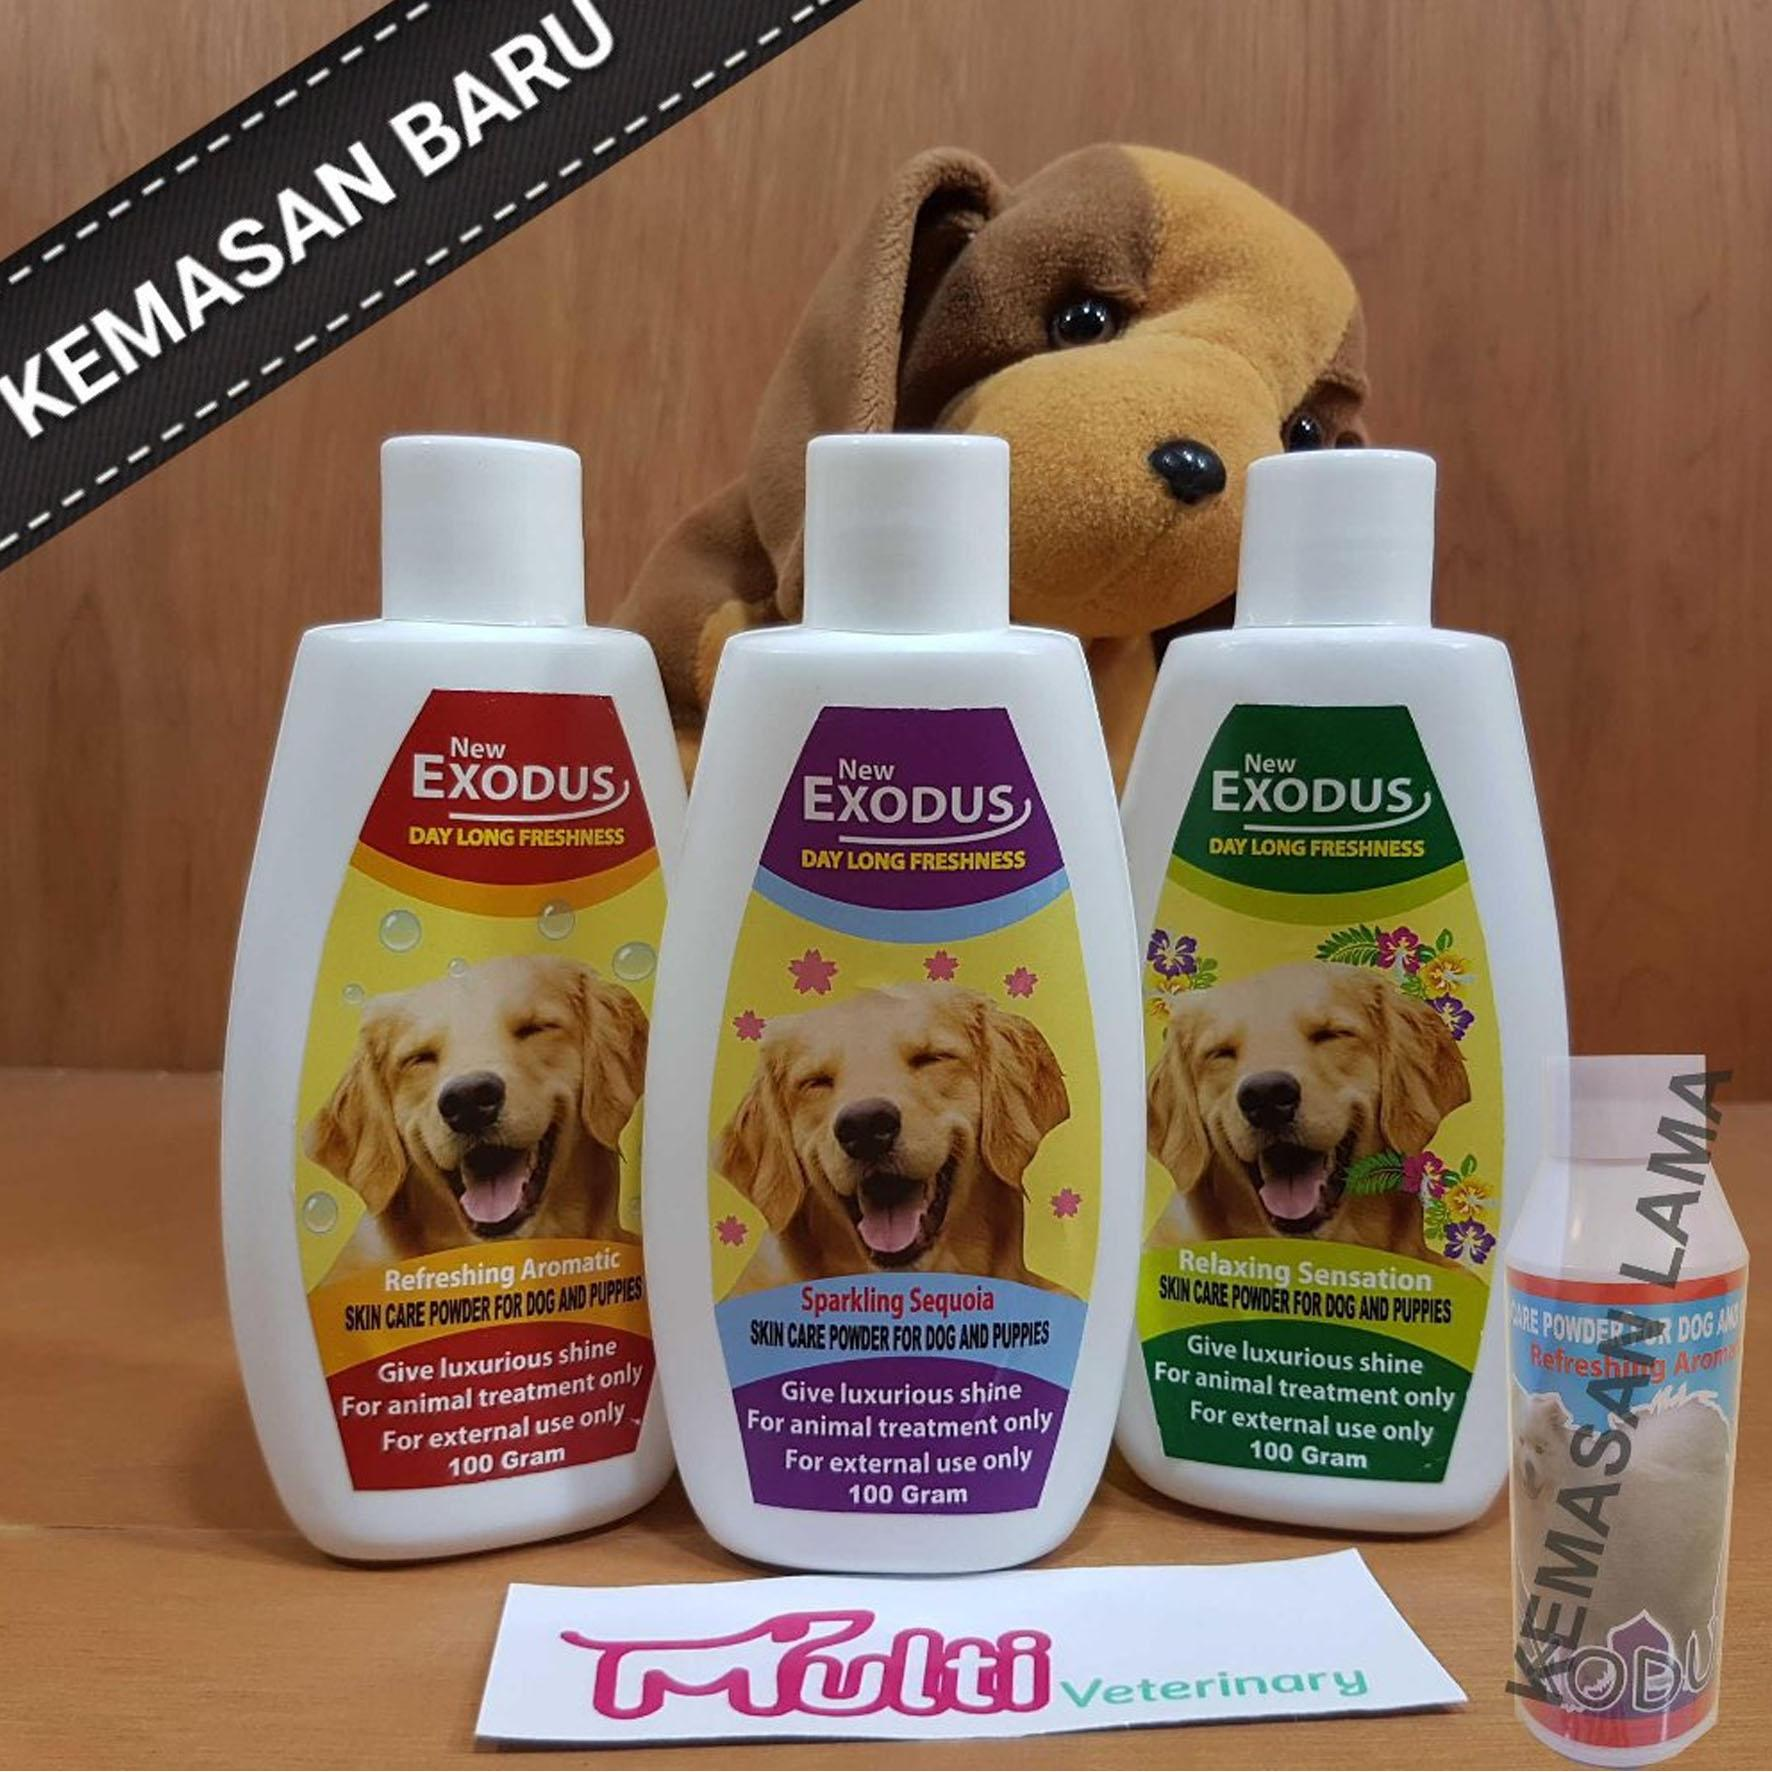 Exodus Bedak Anjing Talc Skin Care Powder For Dog And Puppies By Multi Veterinary.